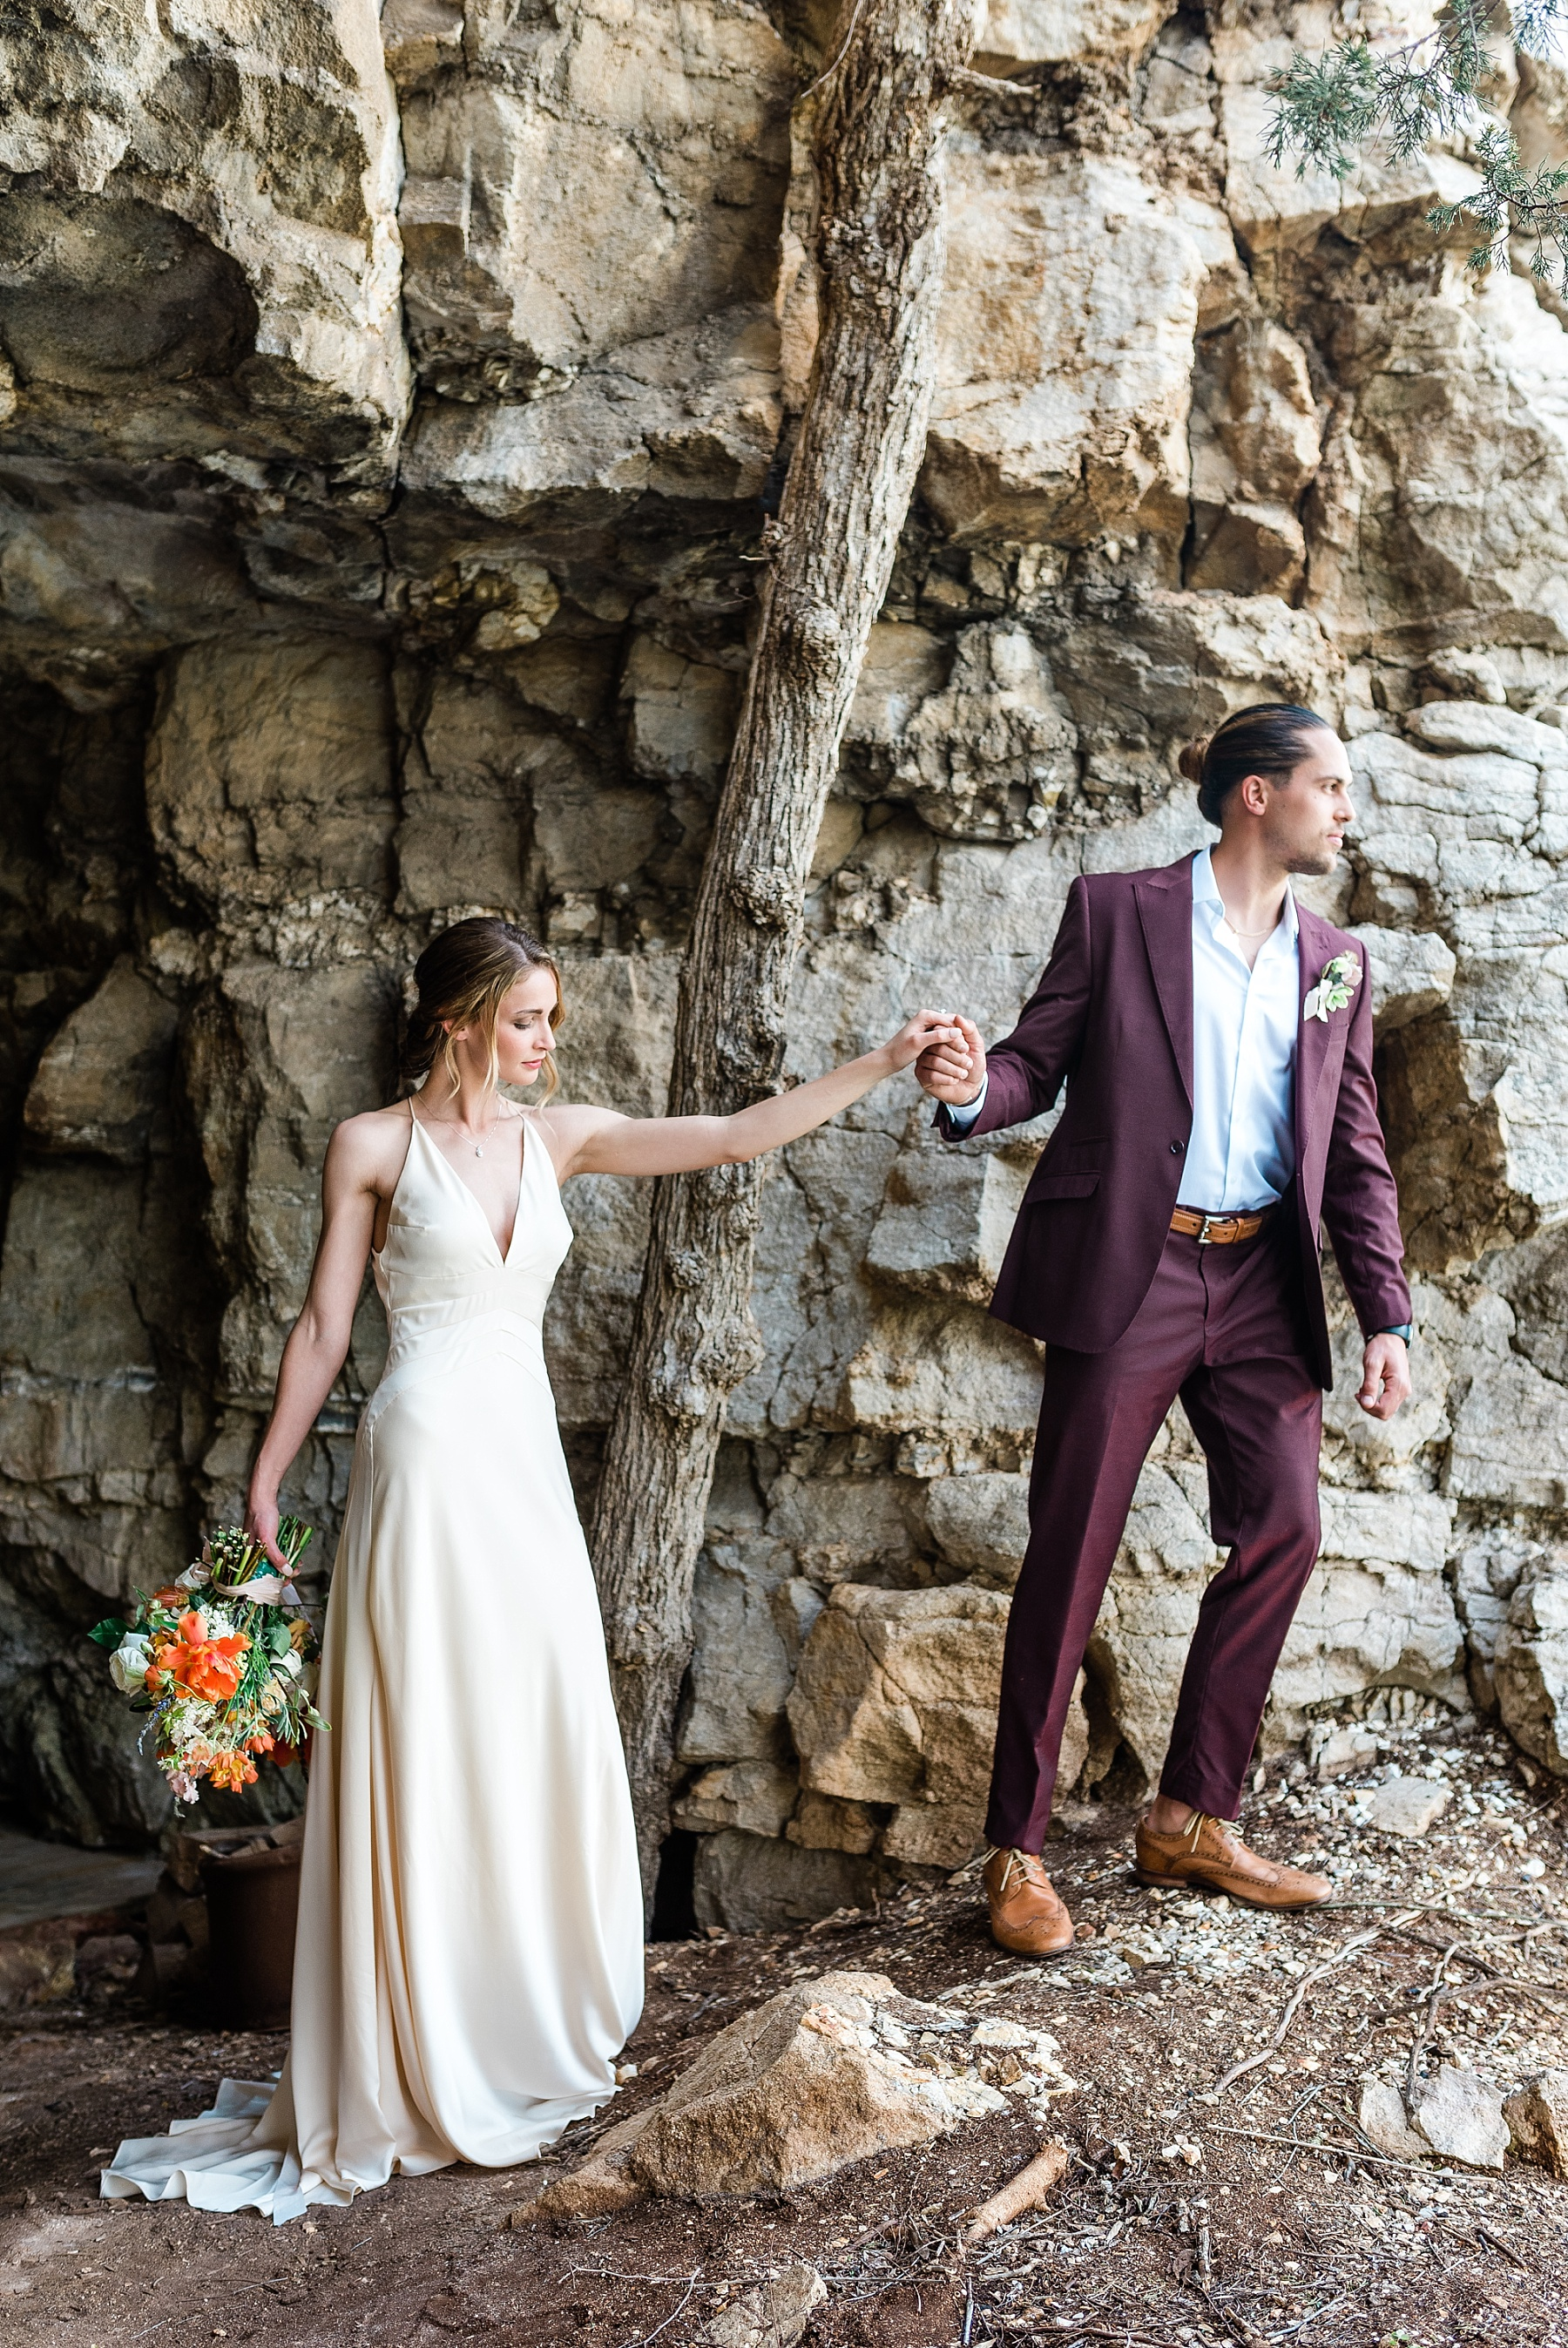 Intimate Spanish and French Inspired Destination Wedding with Lakeside Dinner Party at Dusk at Wildcliff by Kelsi Kliethermes Photography Best Missouri and Maui Wedding Photographer_0057.jpg